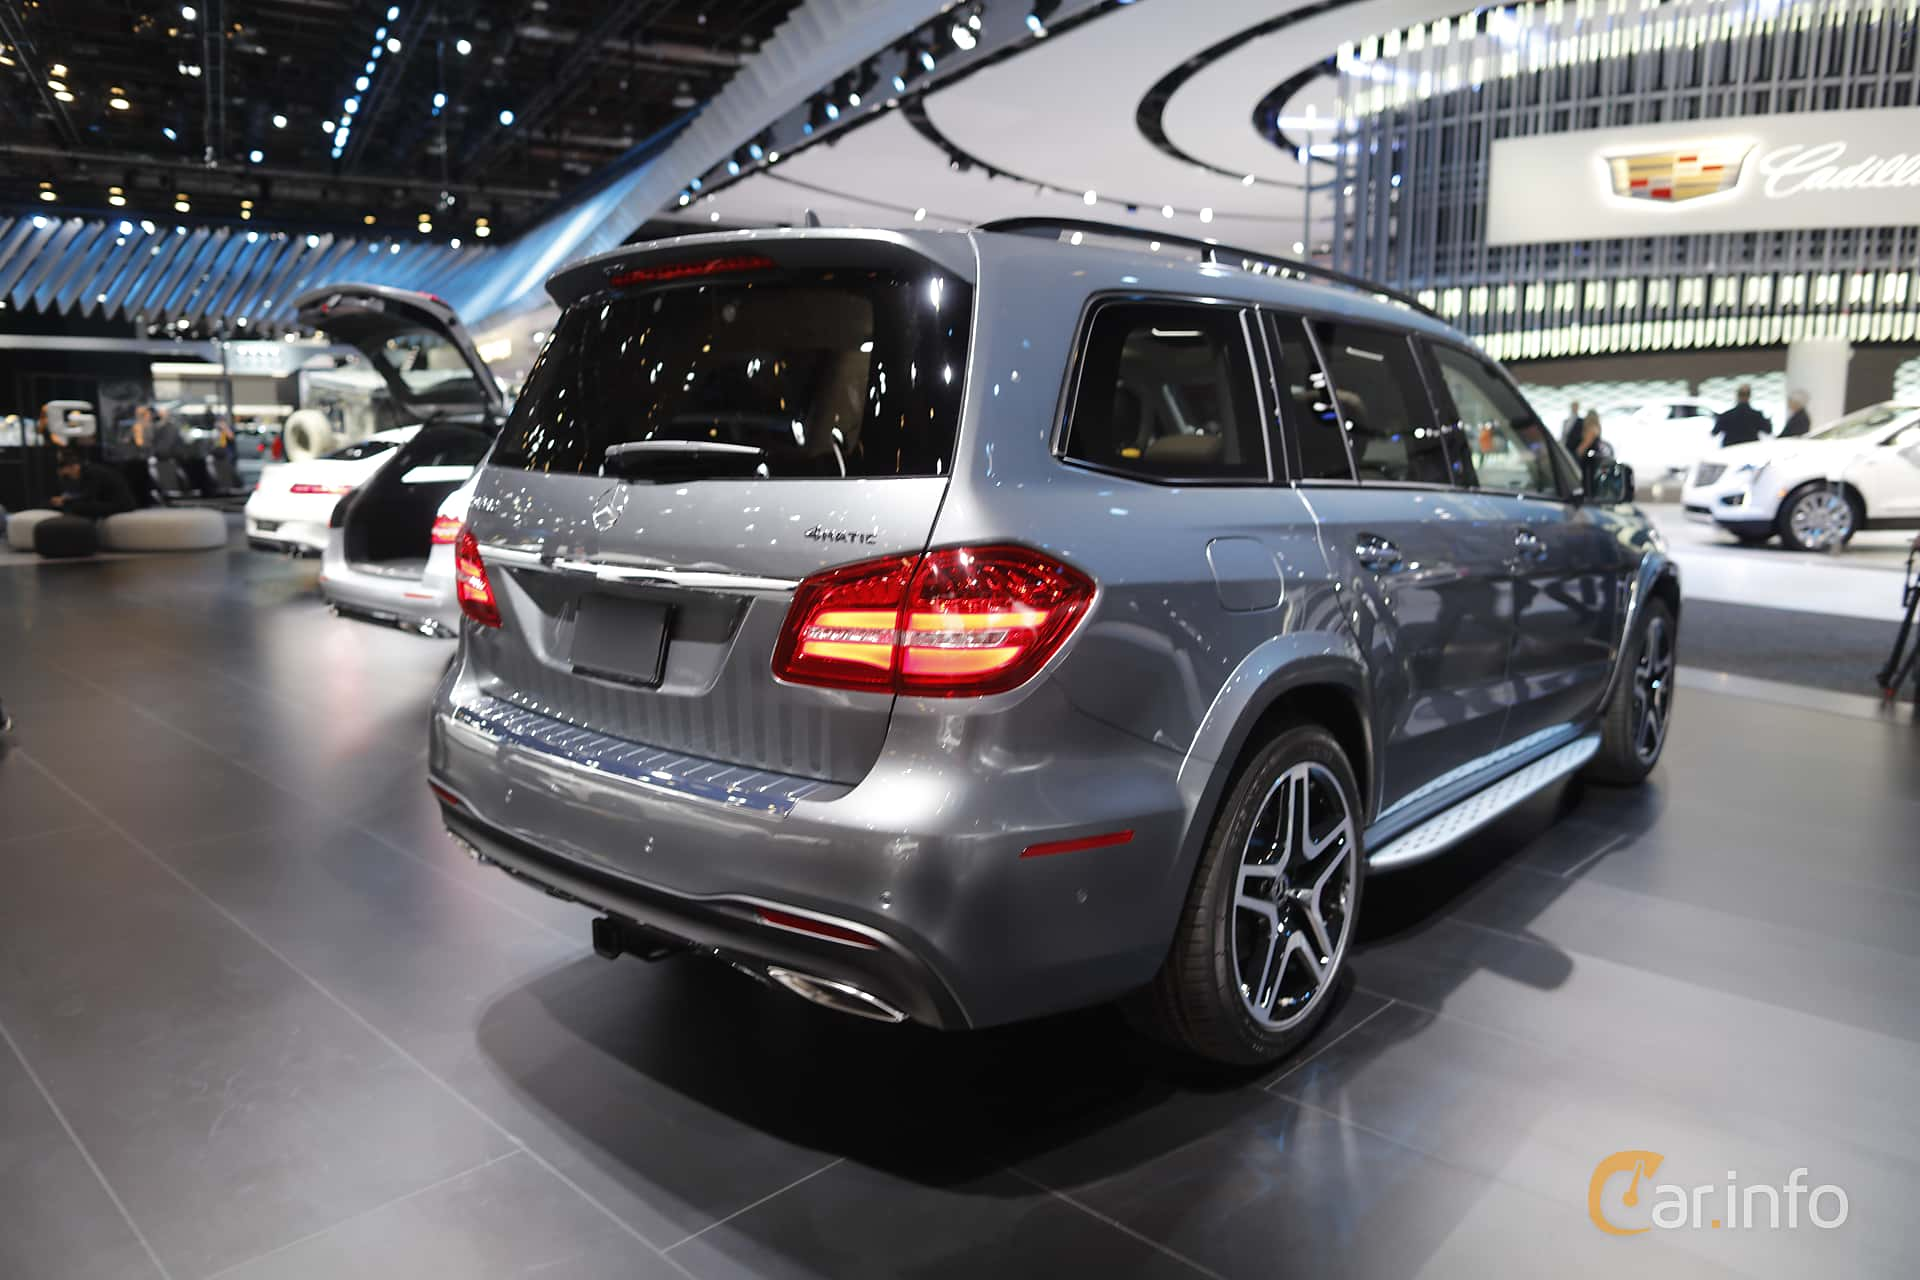 Mercedes-Benz GLS 500 4MATIC  9G-Tronic, 455hp, 2018 at North American International Auto Show 2018